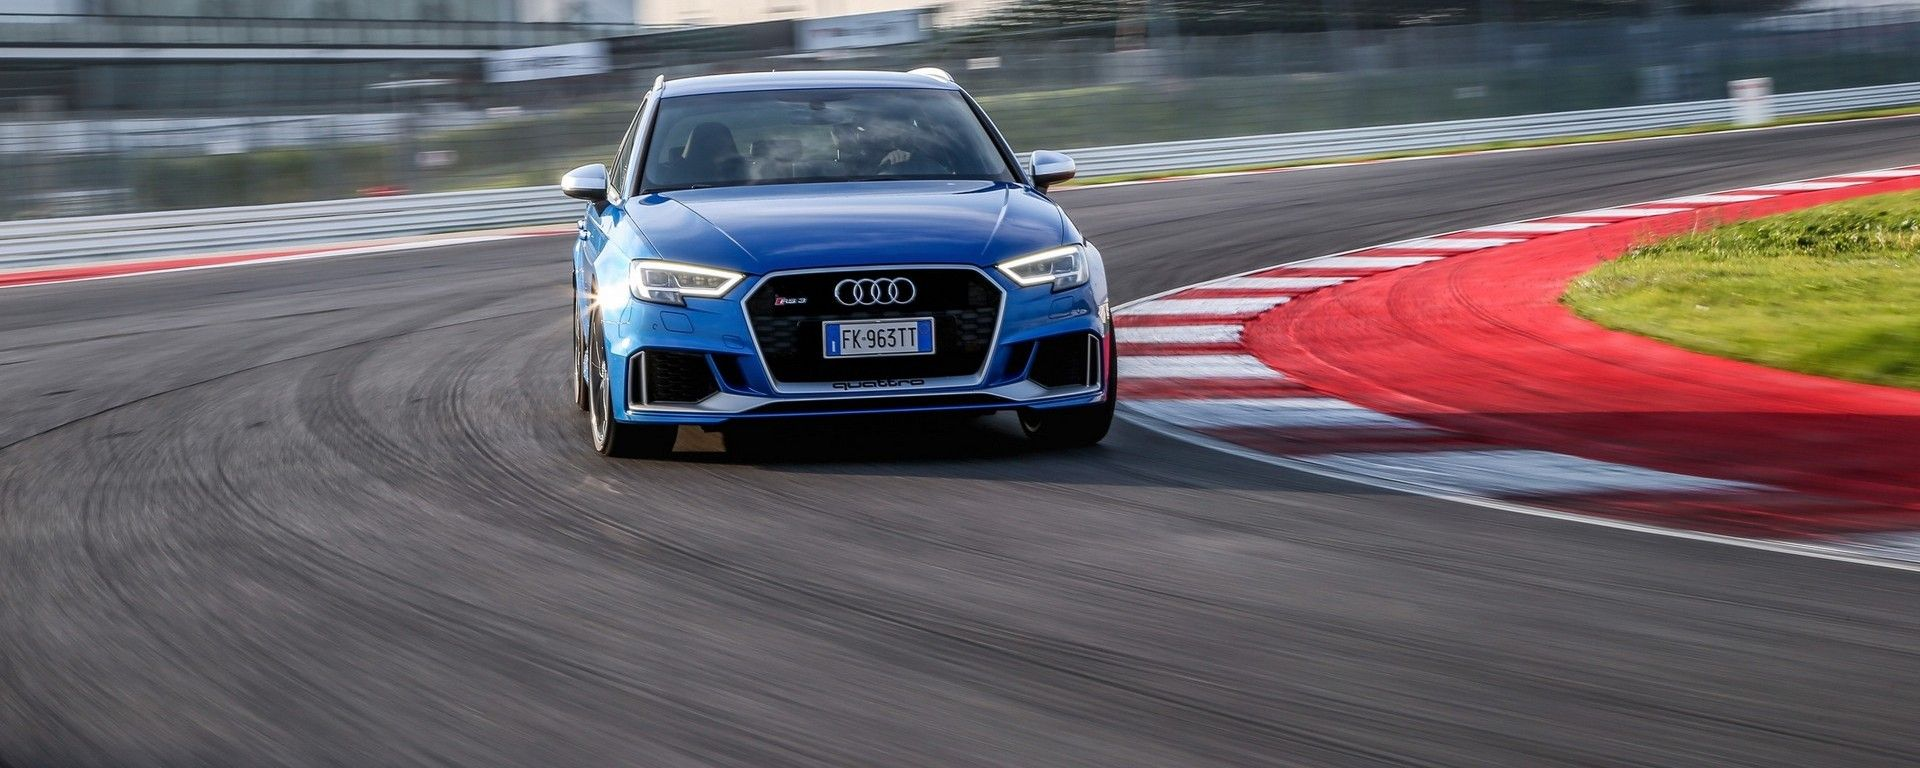 L'Audi RS 3 Sportback 2017 al Misano World Circuit